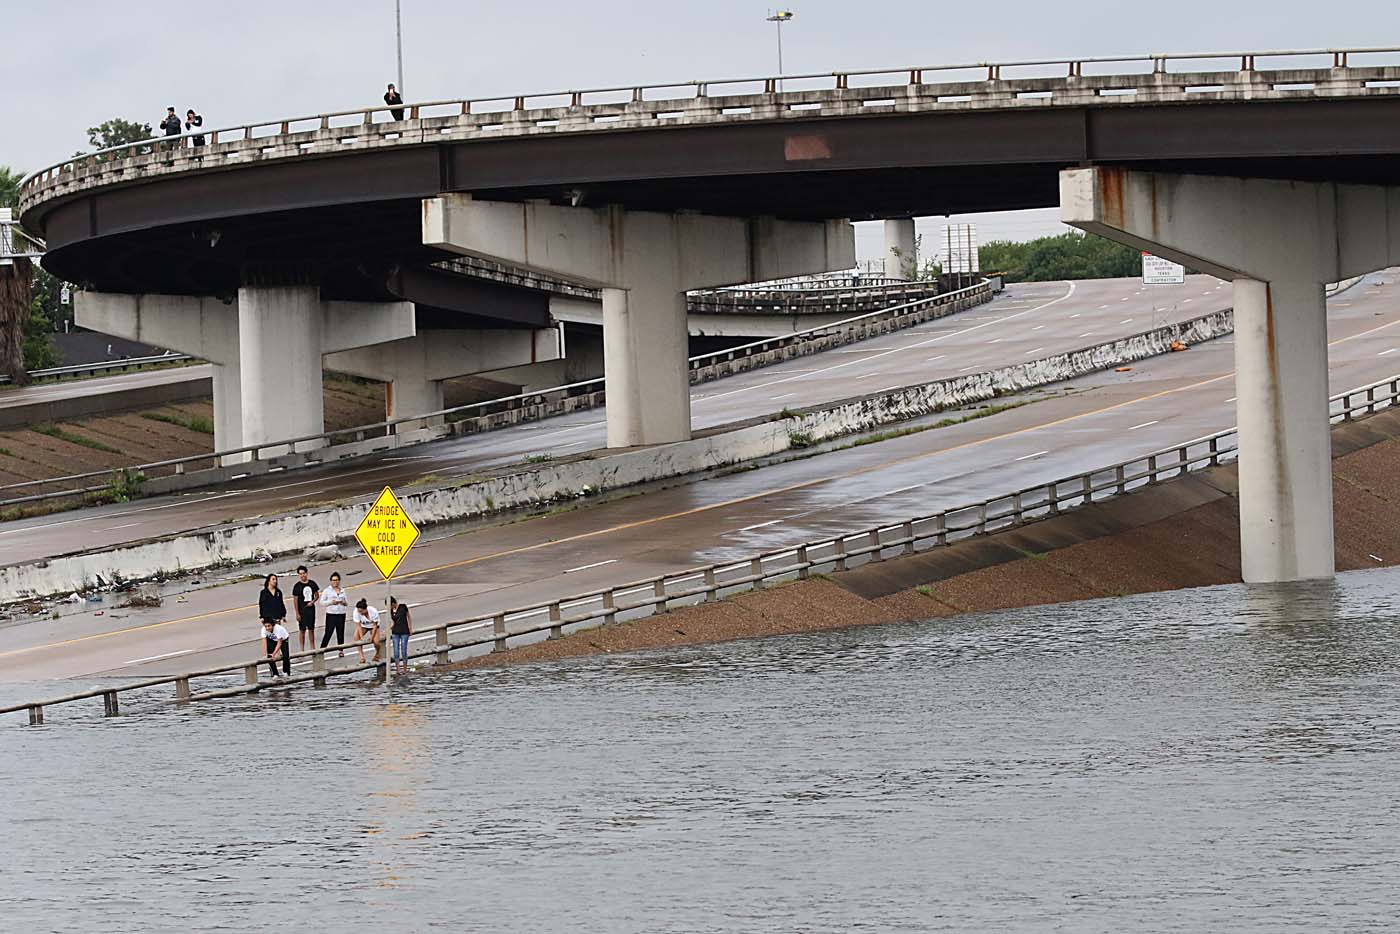 People view the flooded highways in Houston on August 27, 2017 as the city battles with tropical storm Harvey and resulting floods. Massive flooding unleashed by deadly monster storm Harvey left Houston -- the fourth-largest city in the United States -- increasingly isolated Sunday as its airports and highways shut down and residents fled homes waist-deep in water. / AFP PHOTO / Thomas B. Shea